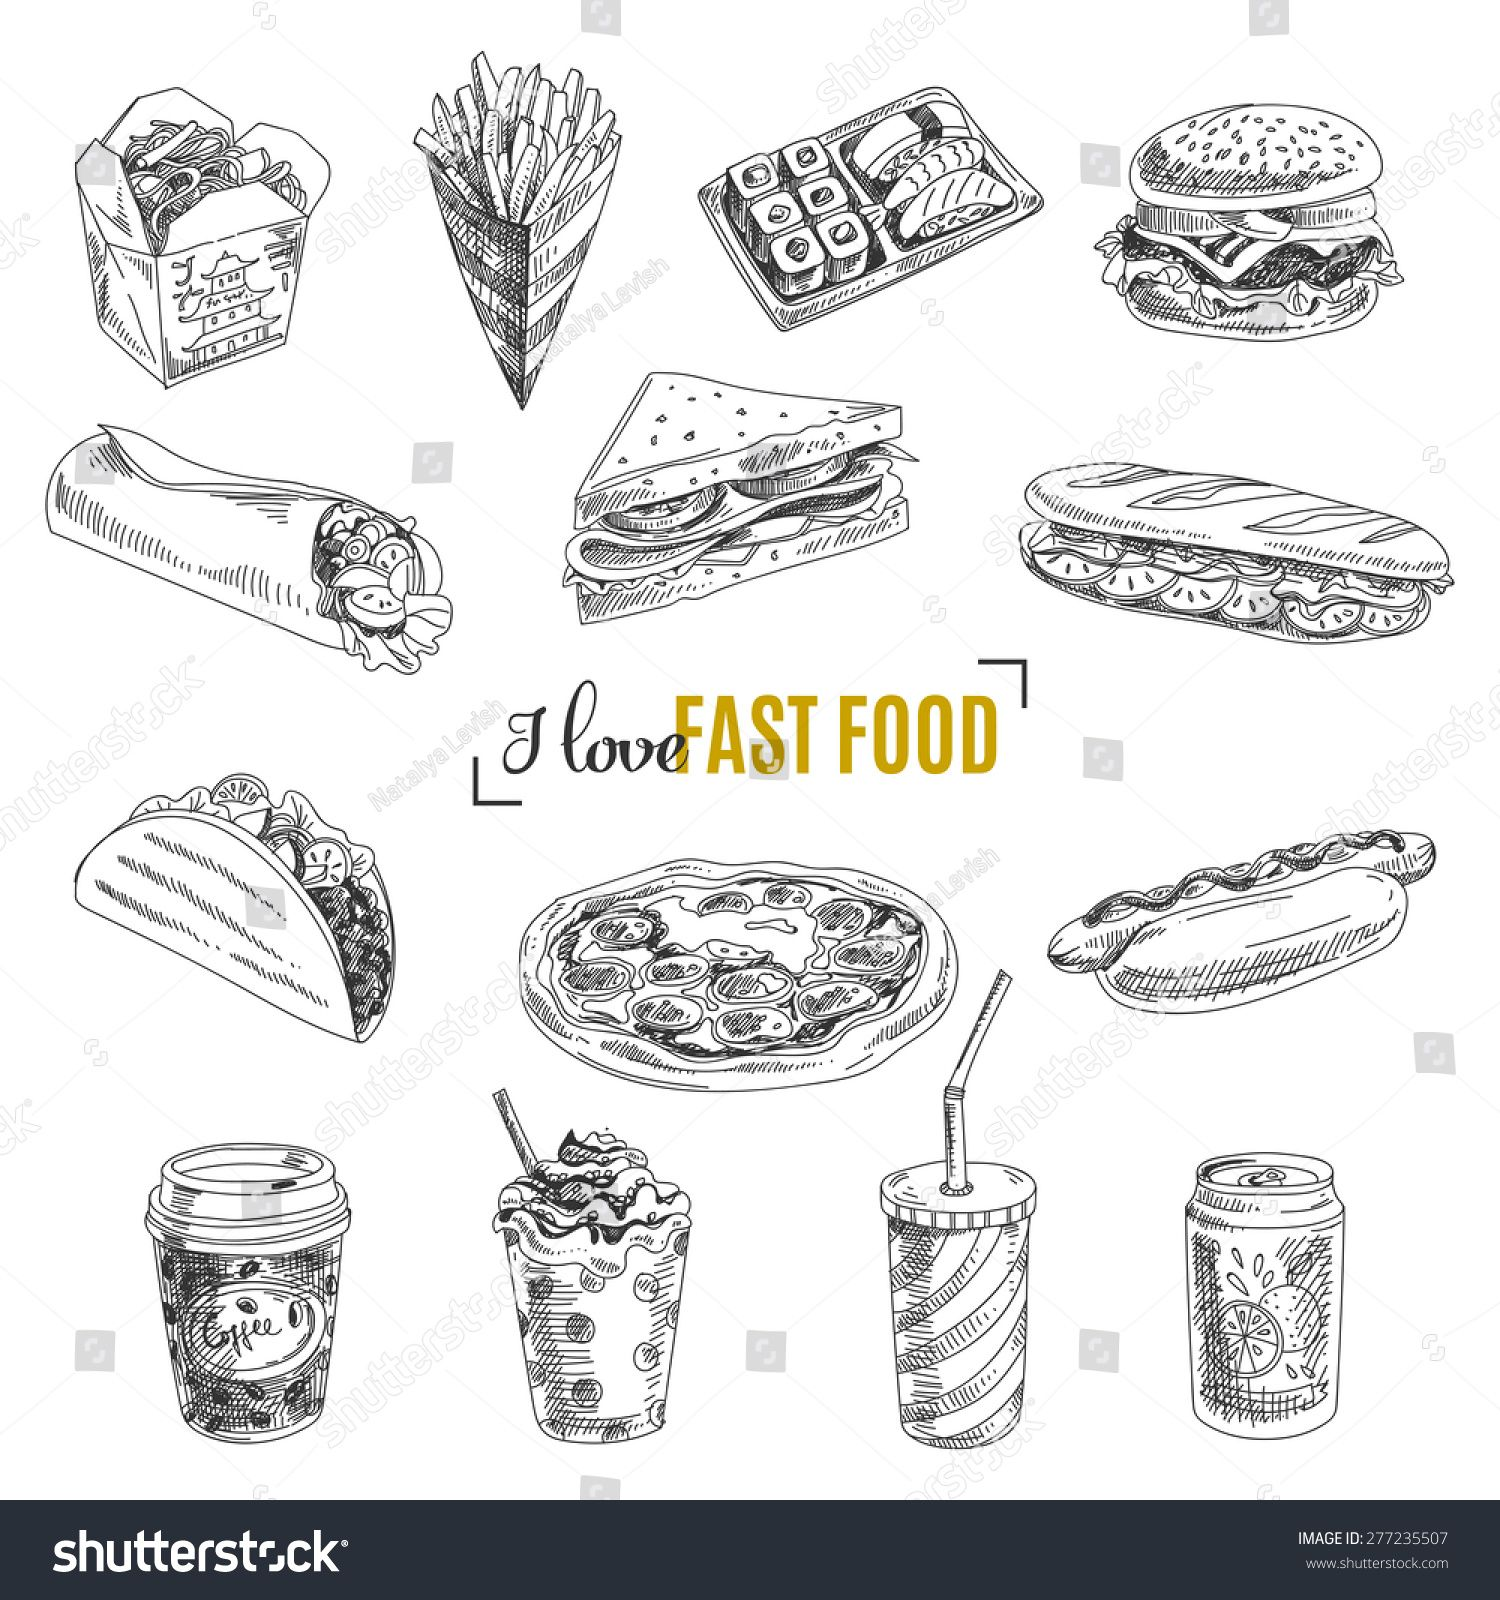 Vector set of fast food. Vector illustration in sketch style. Hand drawn design elements. #Sponsored , #sponsored, #food#illustration#fast#Vector